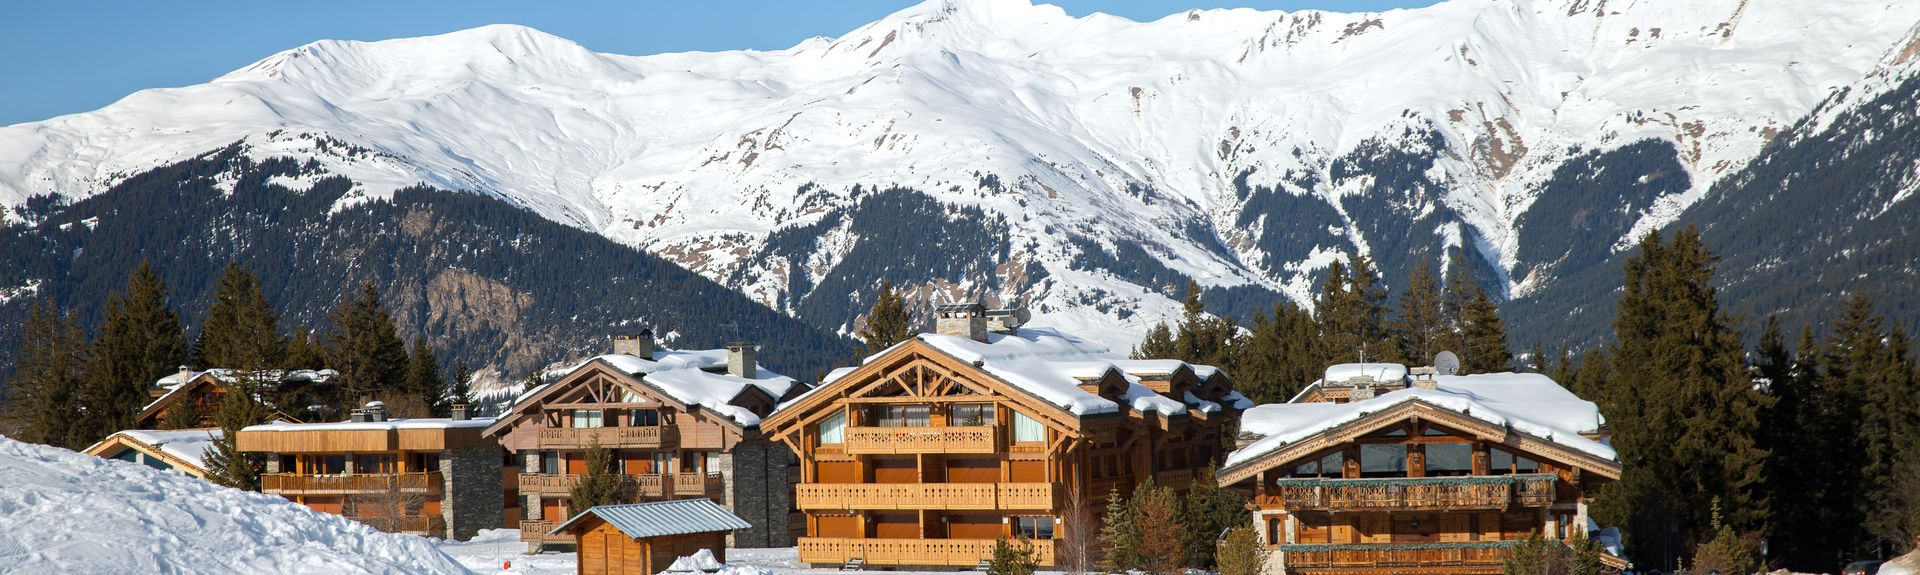 Courchevel 1650, Courchevel, Francja